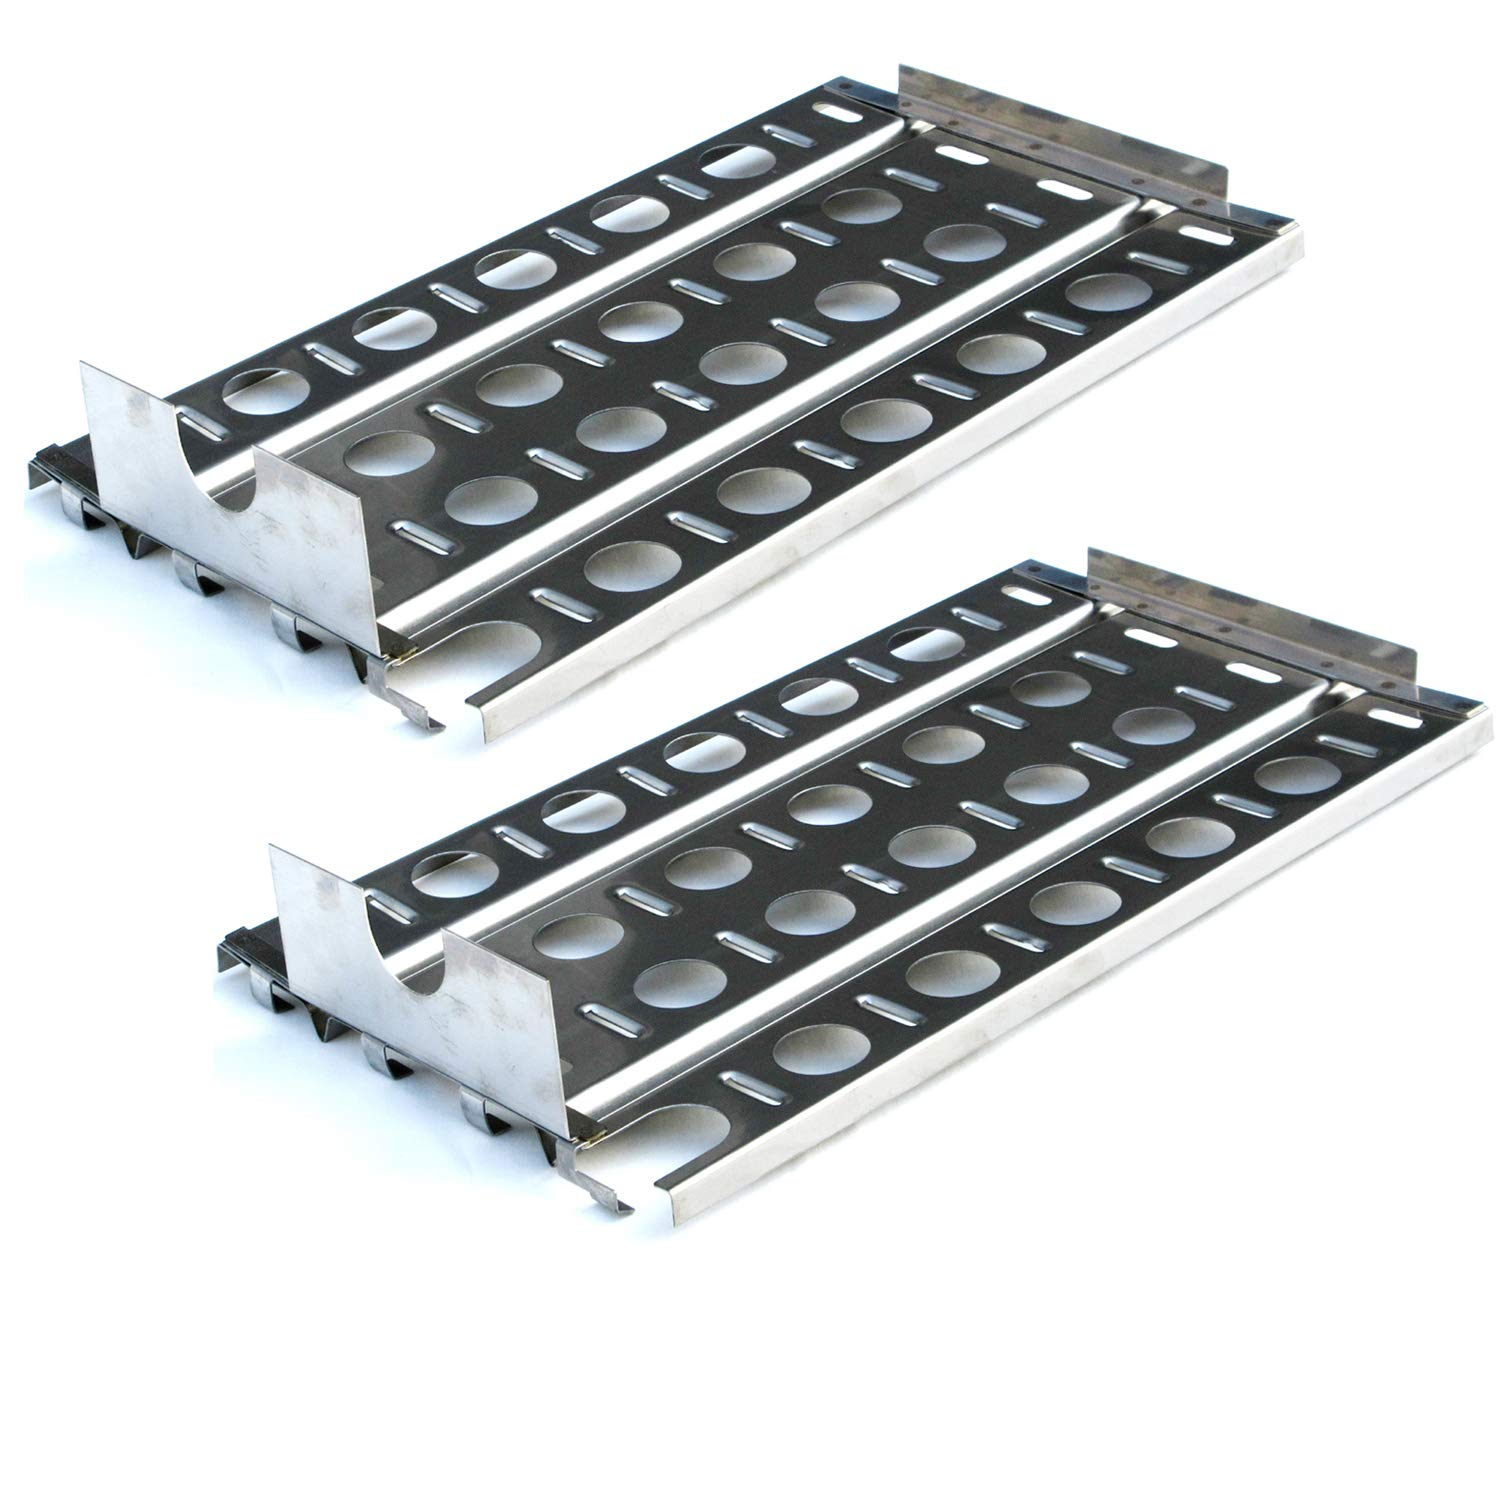 Direct store Parts DP114 (2-pack) Stainless Steel Heat plates Replacement Lynx Gas Grill Models (2) by Direct store (Image #1)